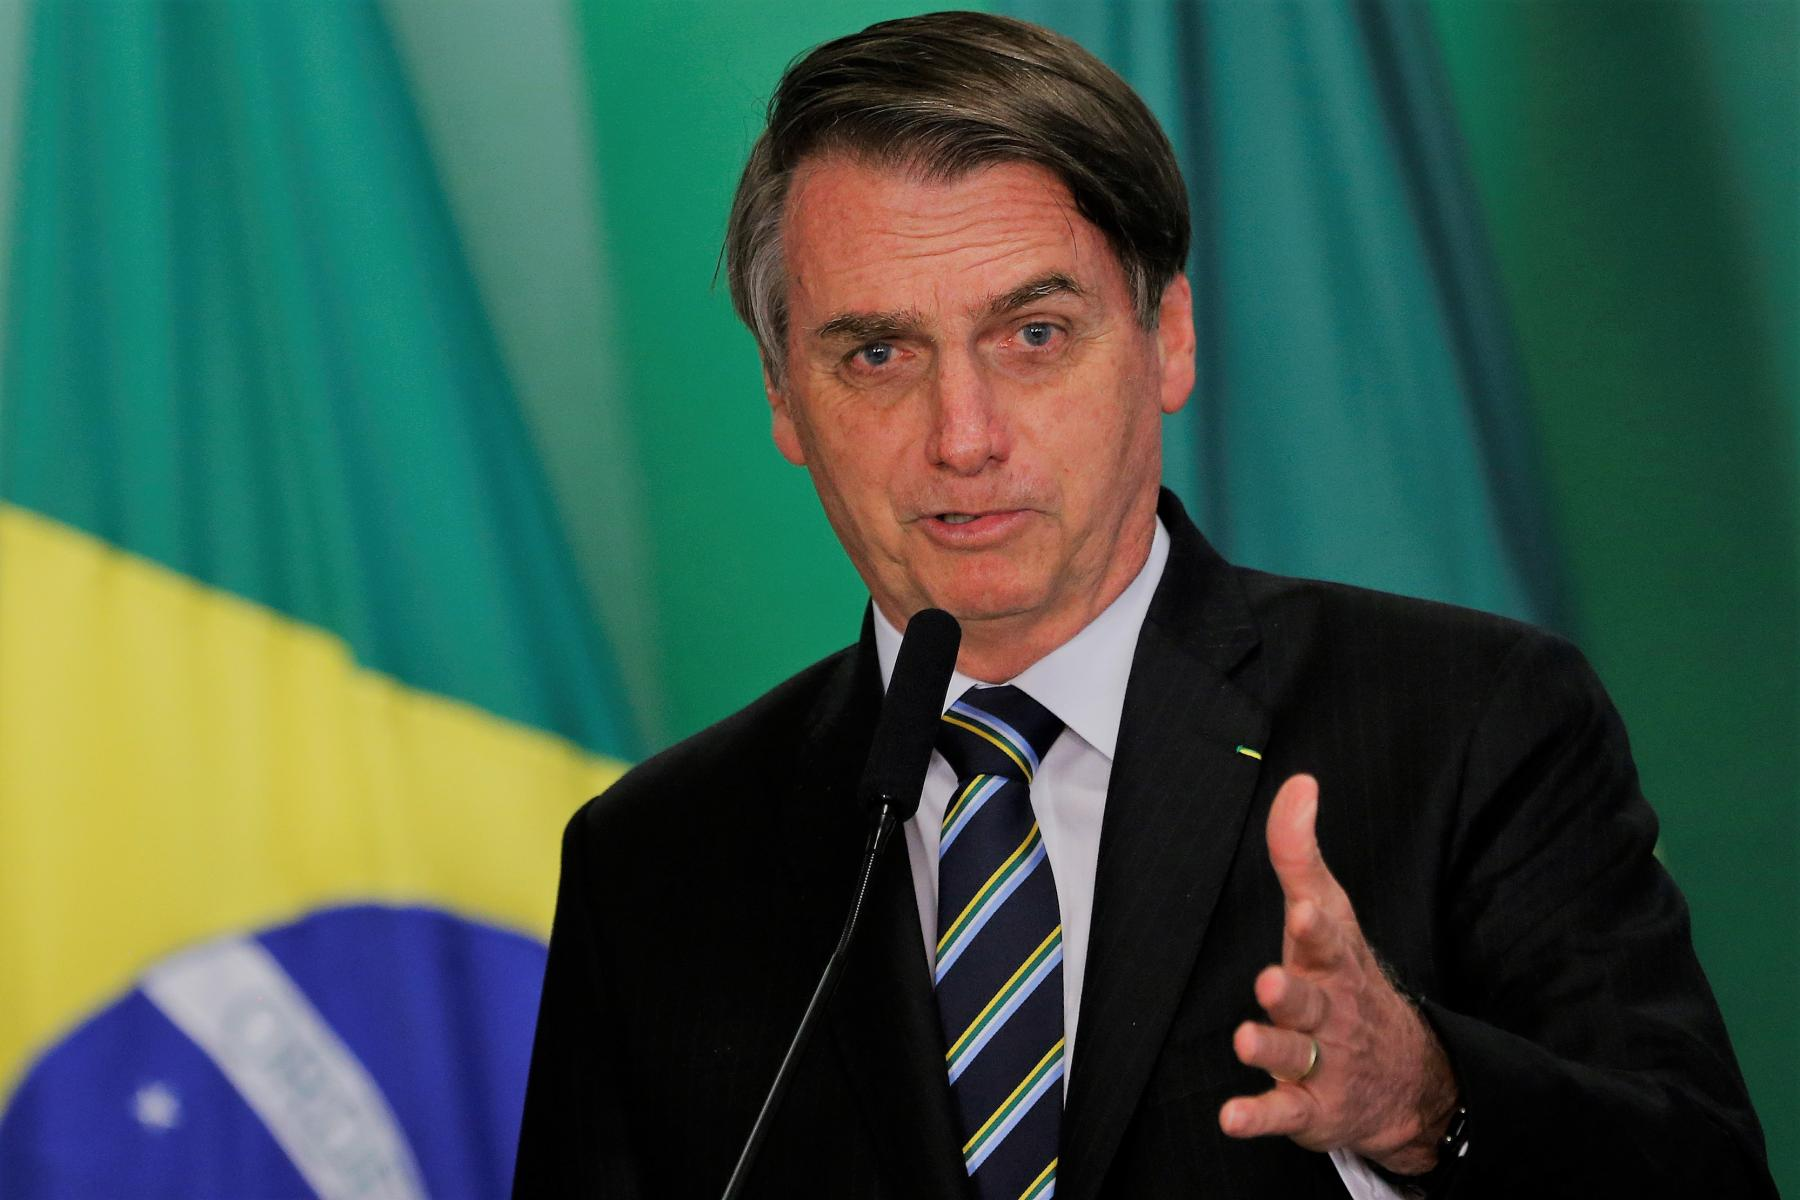 An image of Jair Bolsonaro, the President of Brazil, speaking at his inauguration ceremony in January 2019.